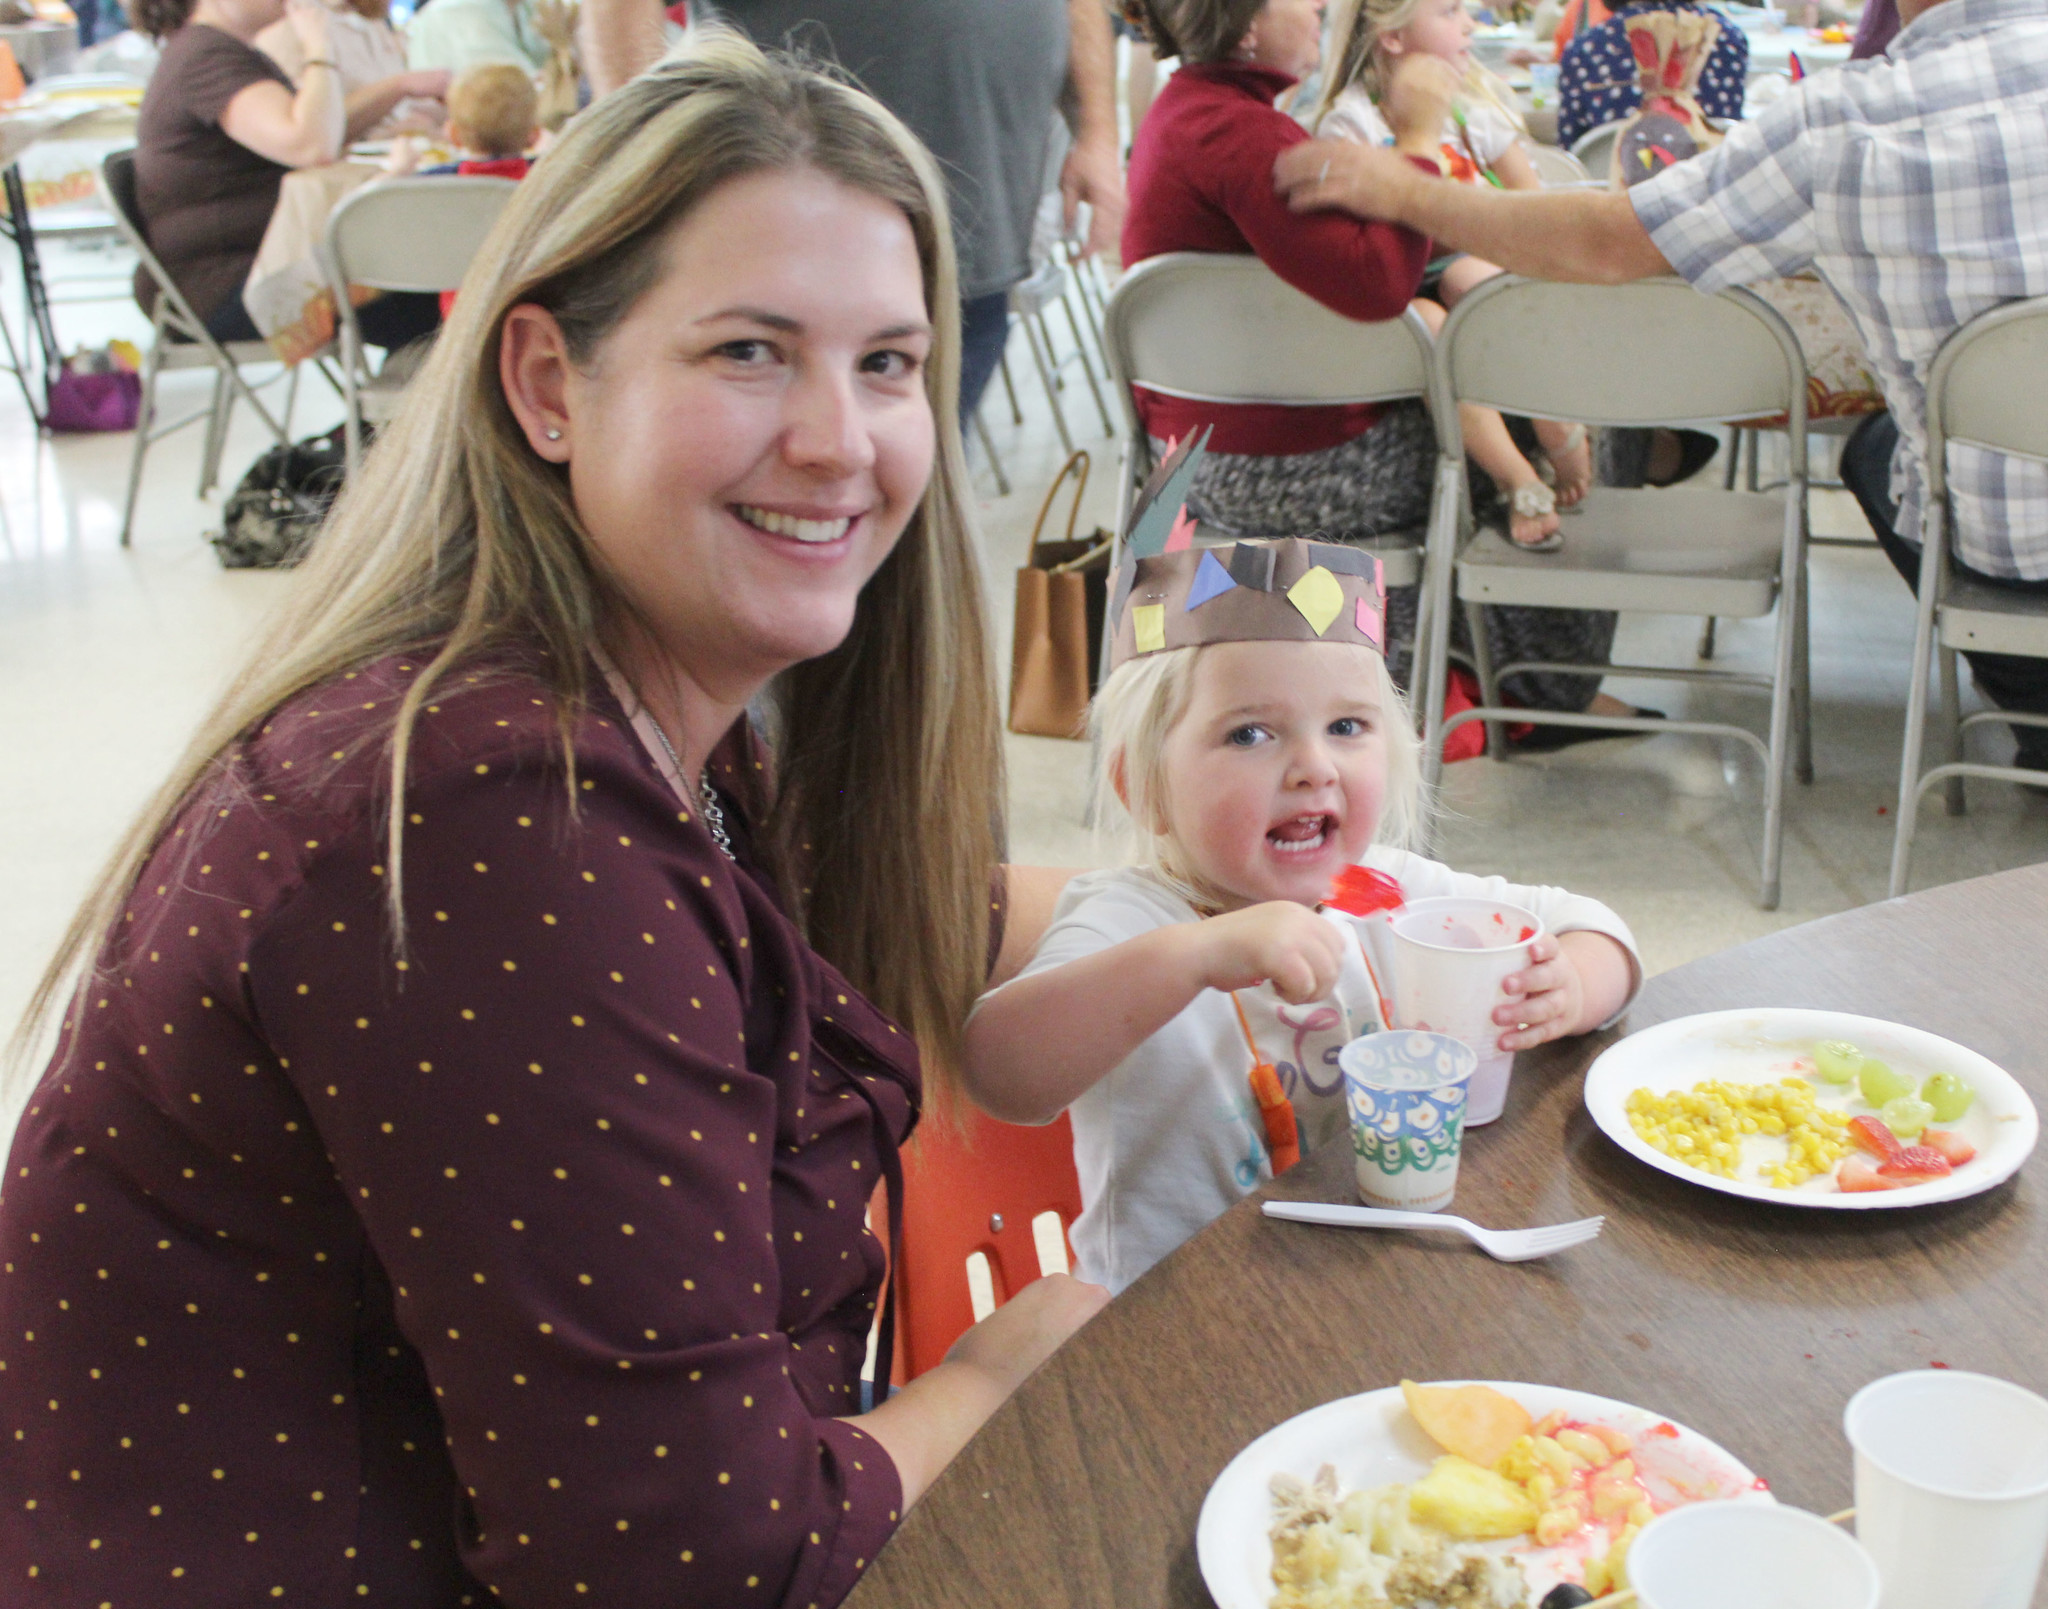 Ashlie Day shares the feast with 2-year-old daughter Scarlett.